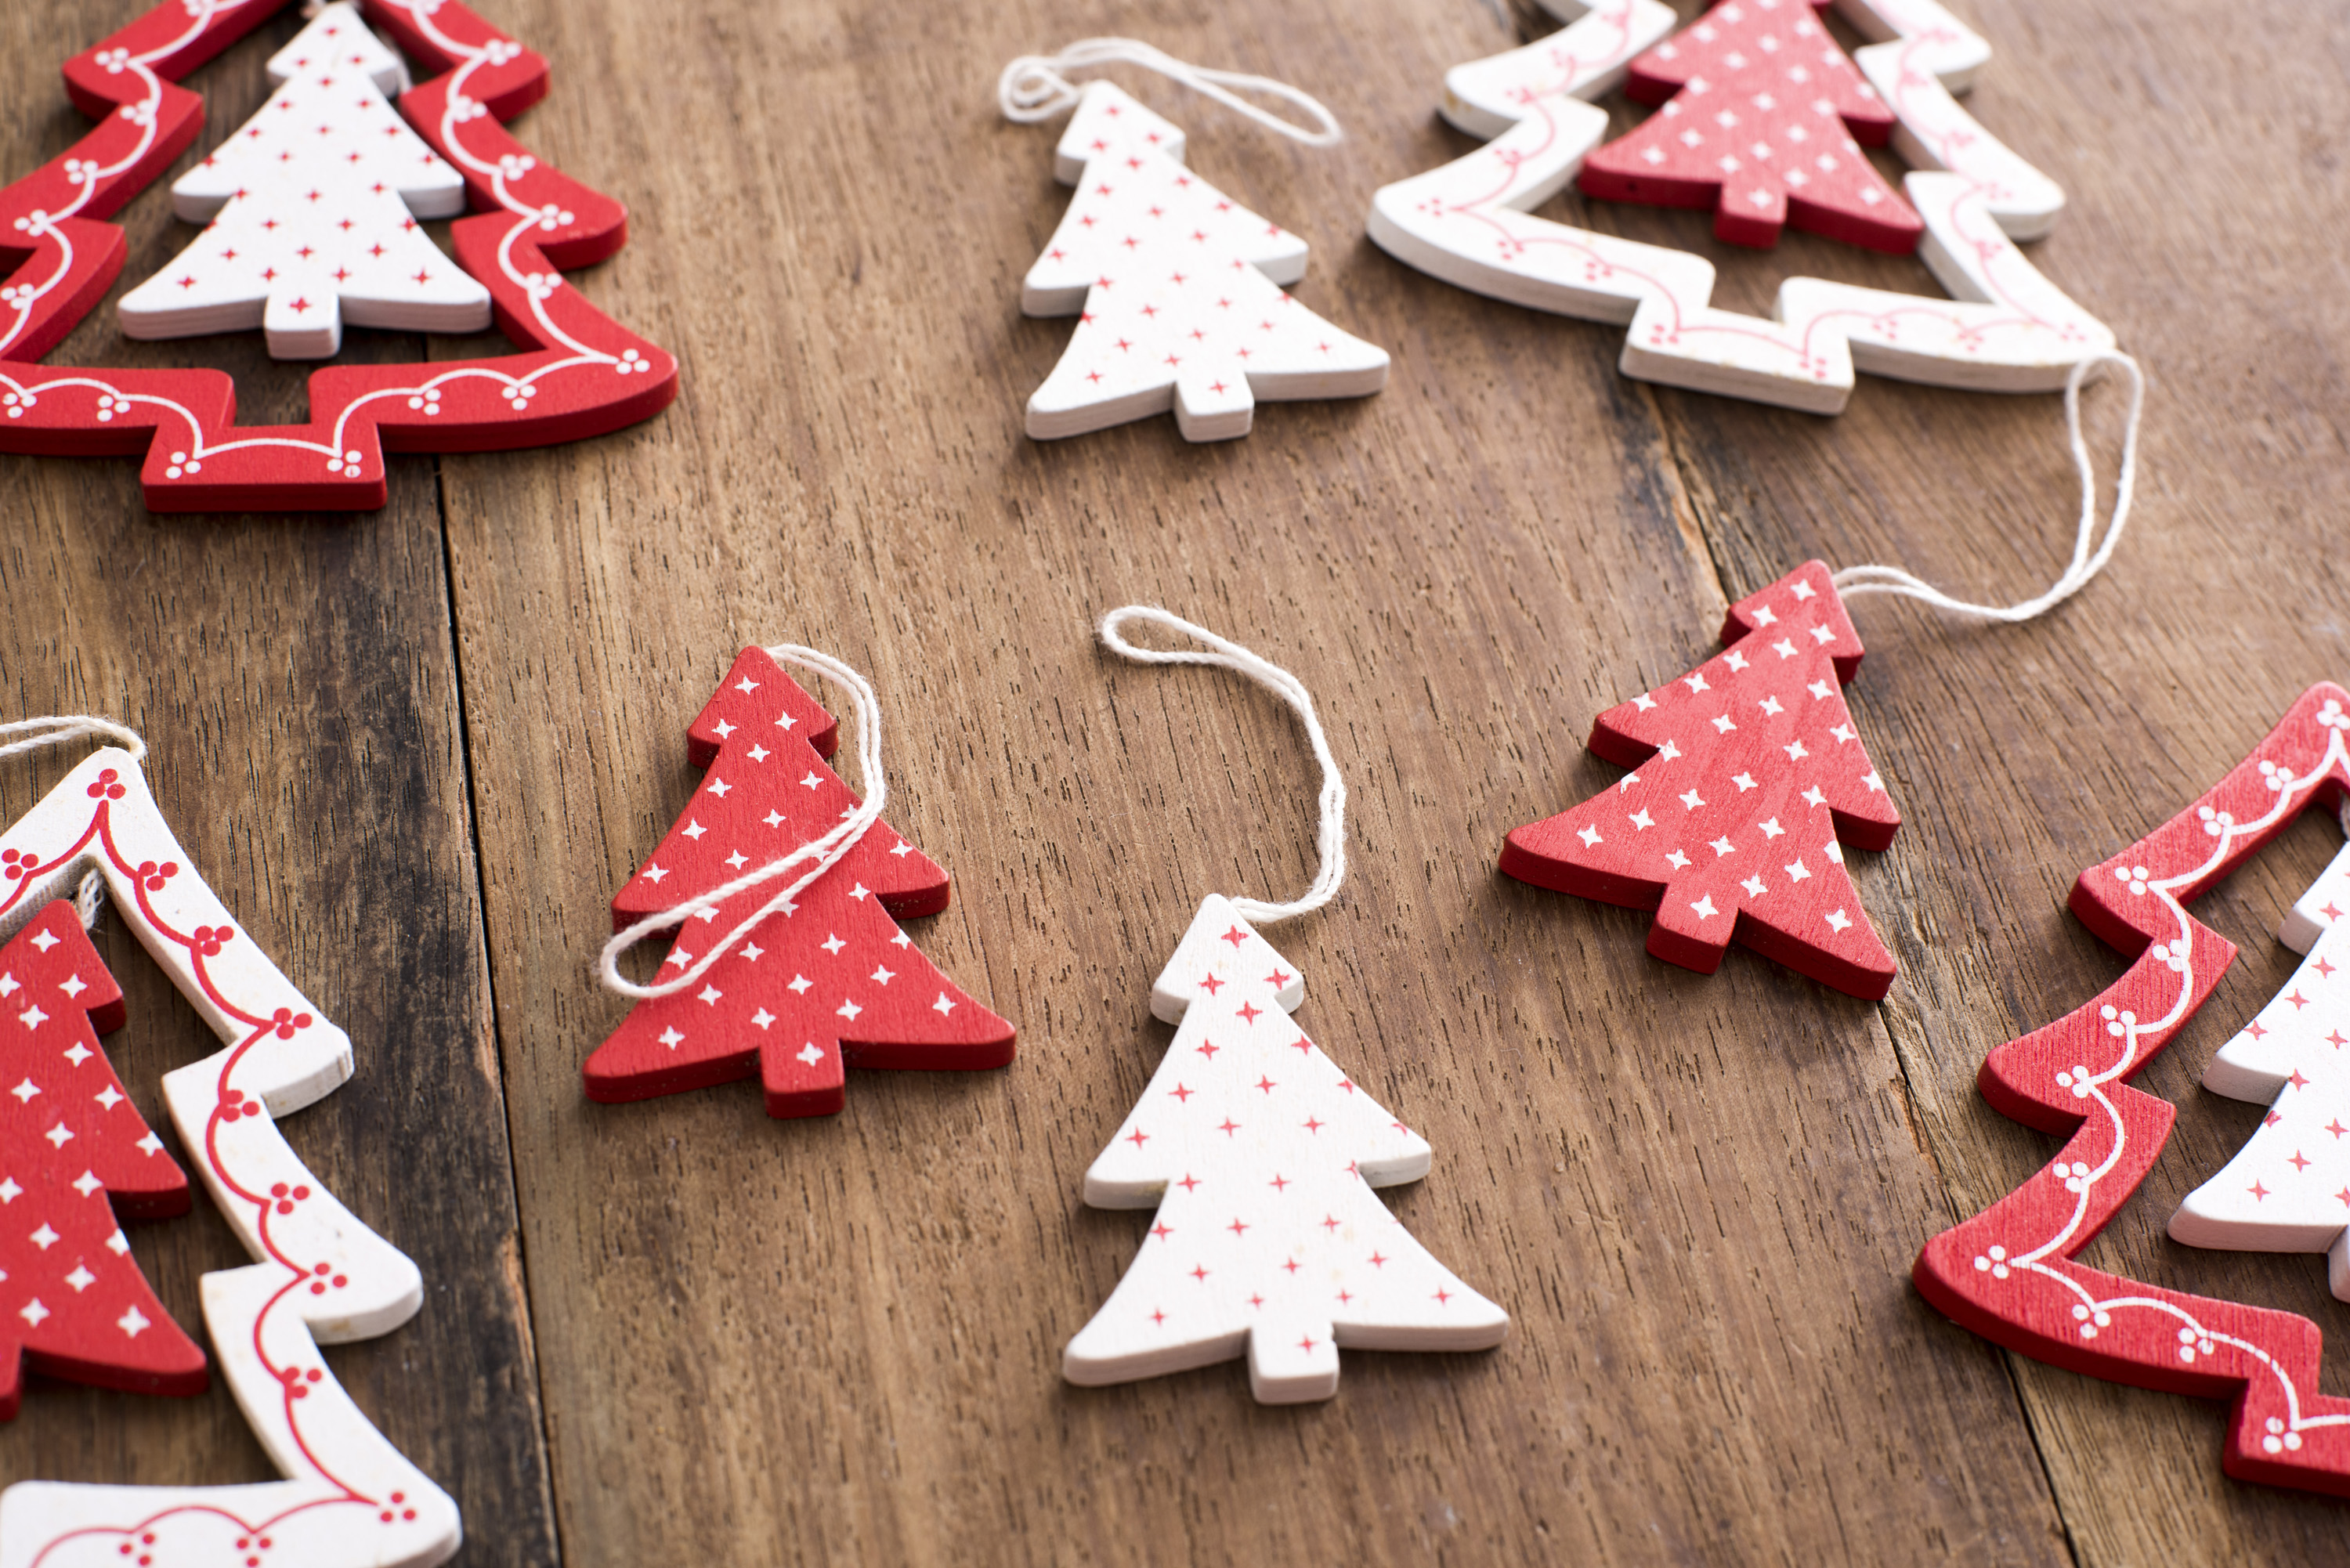 Wooden tree shaped Christmas ornaments with a decorative red and white pattern lying on a wooden table in a full frame view